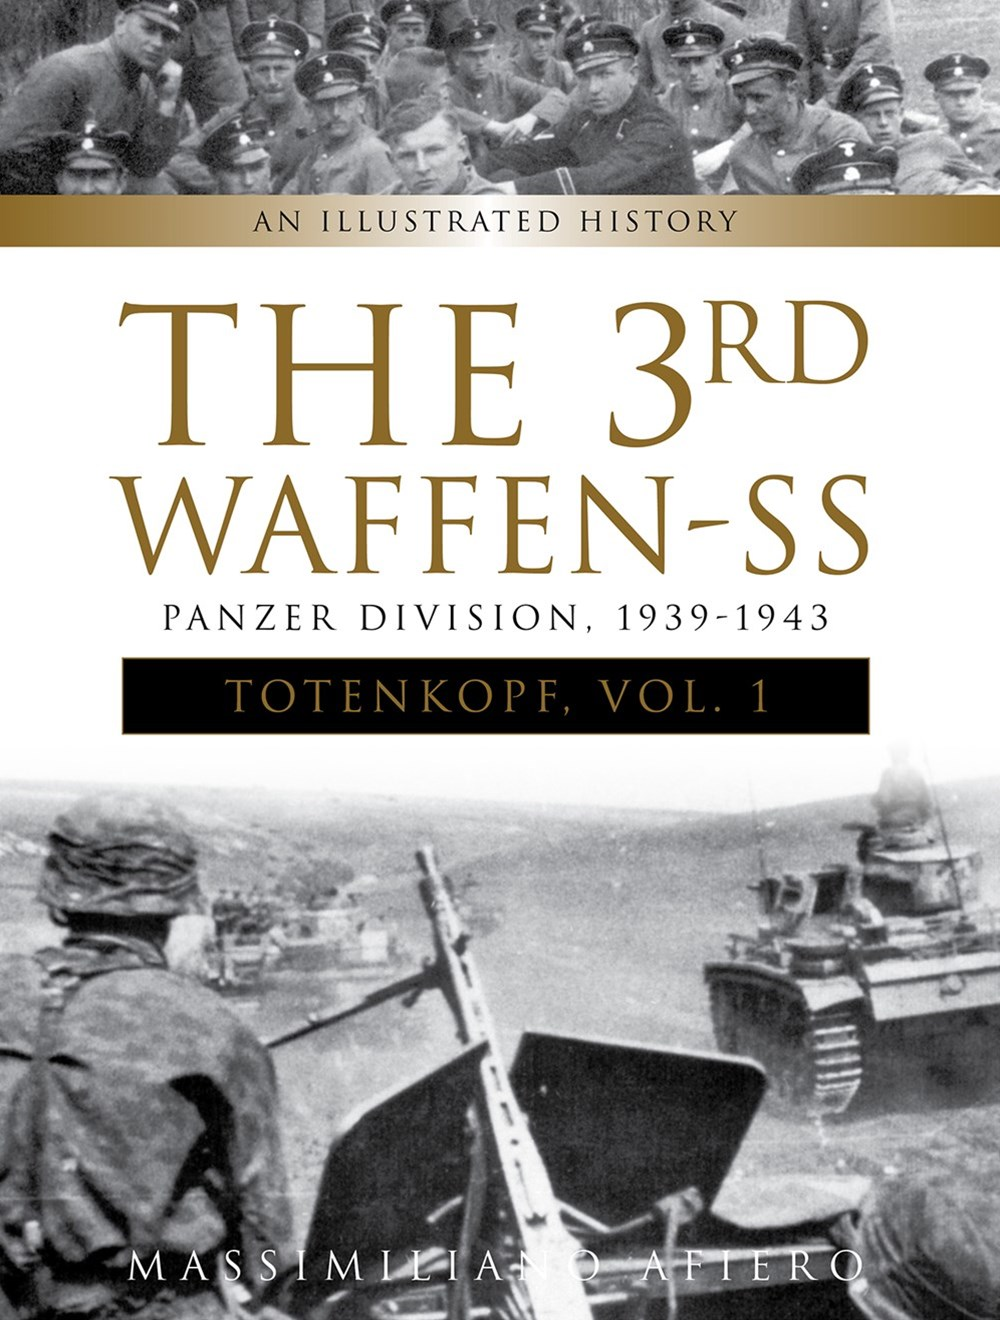 3rd Waffen-SS Panzer Division &quote;Totenkopf&quote;, 1939-1943: An Illustrated History Vol. 1